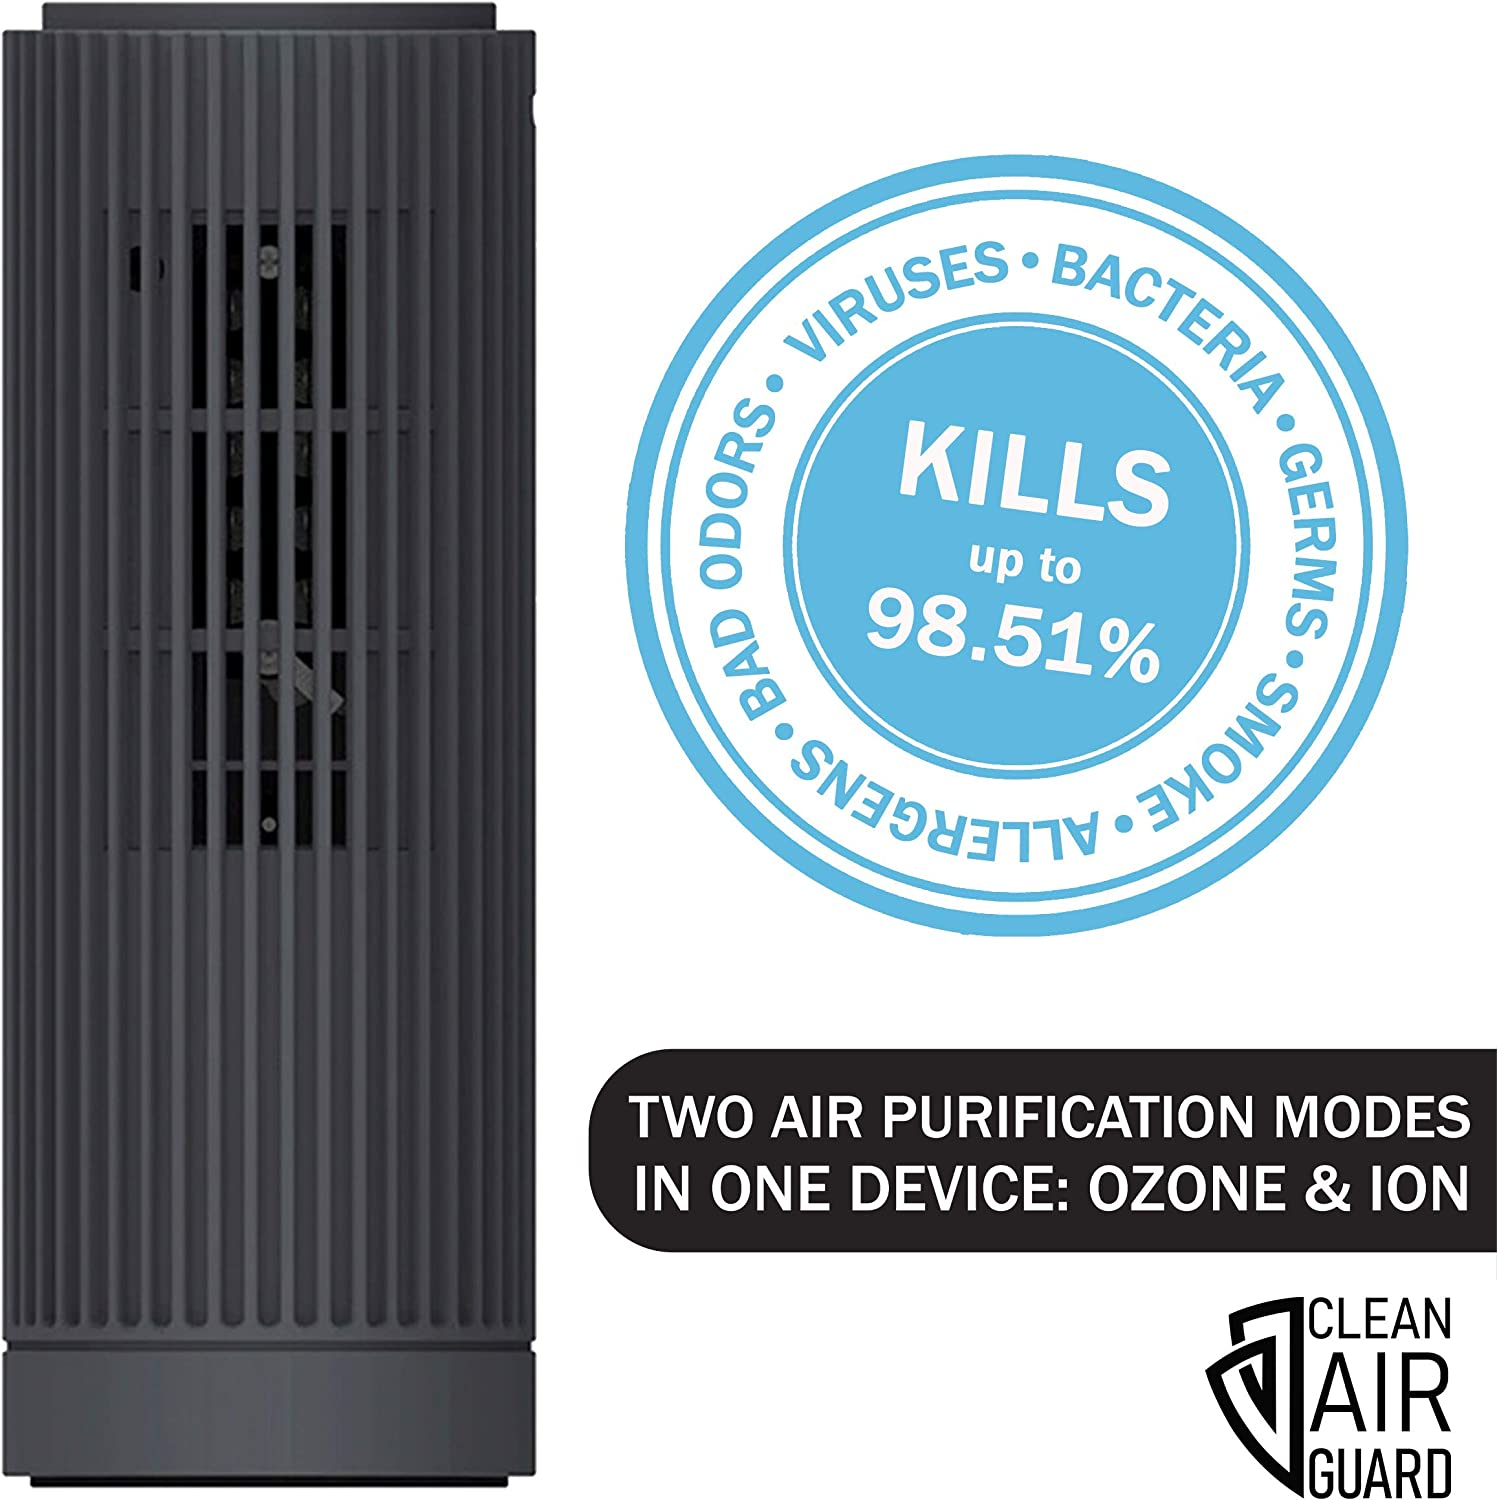 Clean Air Guard Portable Ozone Generator & Ionizer Air Purifier for Home, Car, Office. Remove Viruses, Bacteria, Germs, Smoke, Dust, Mold, Pollen, Pet Dander, Allergens. Quiet Air Cleaner, Dark Gray